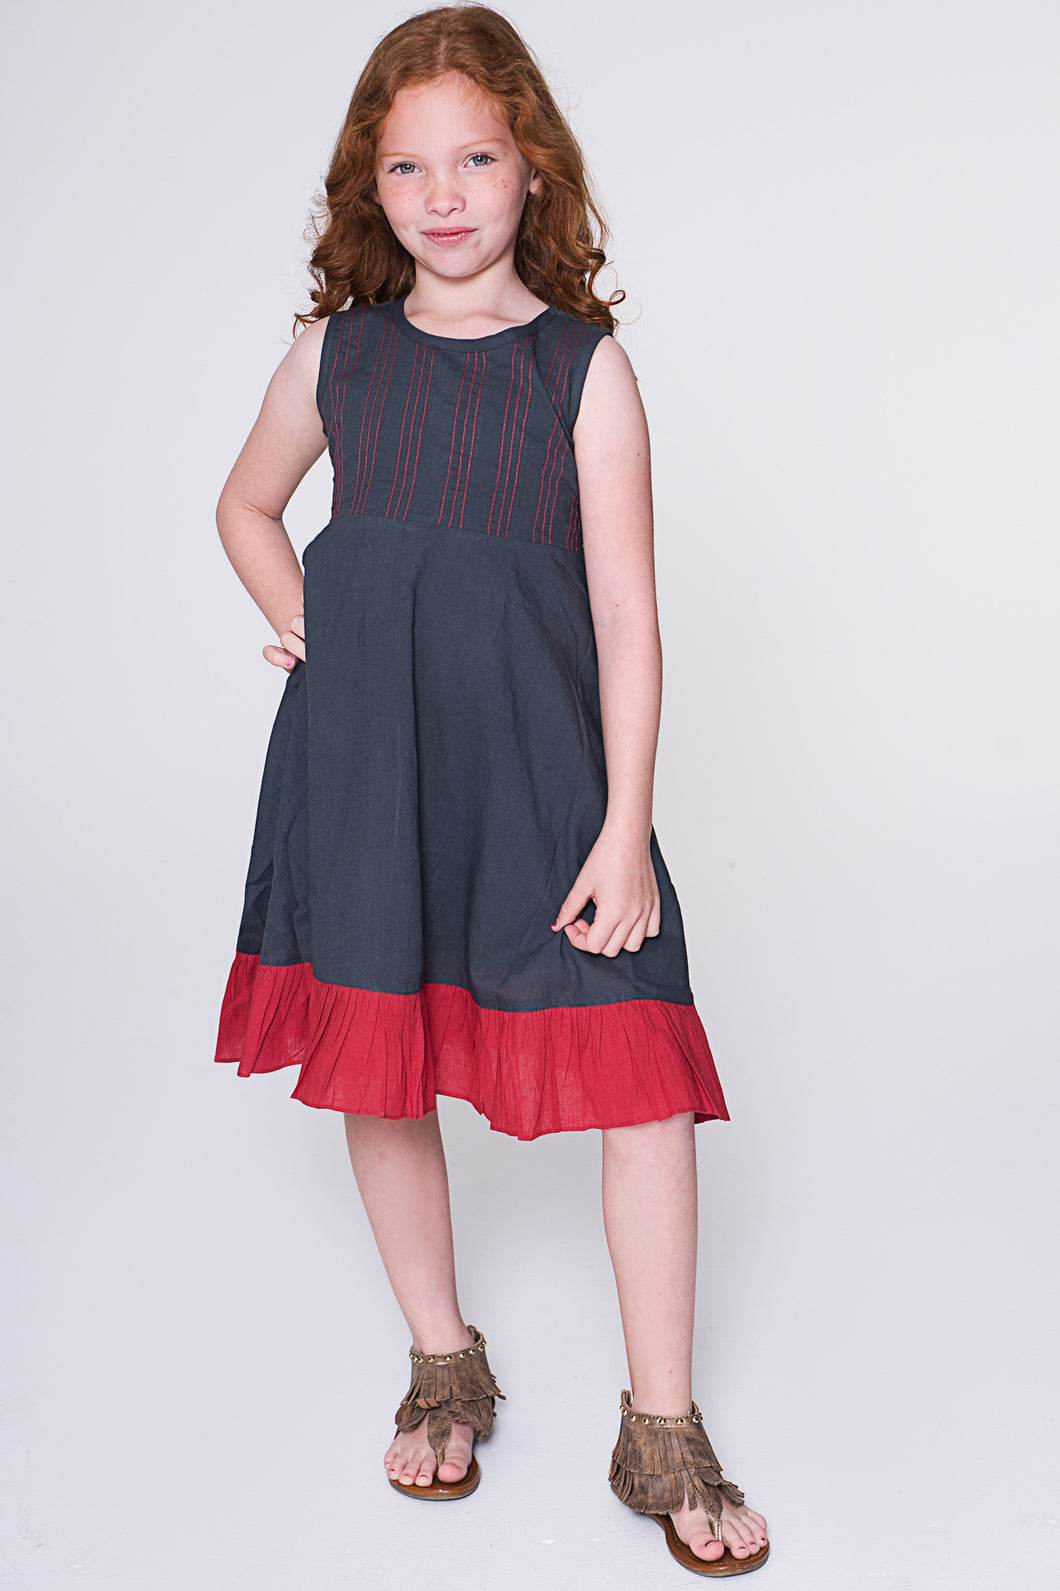 Grey & Red Contrast Stitch Shift Dress - Kids Clothing, Dress - Girls Dress, Yo Baby Online - Yo Baby